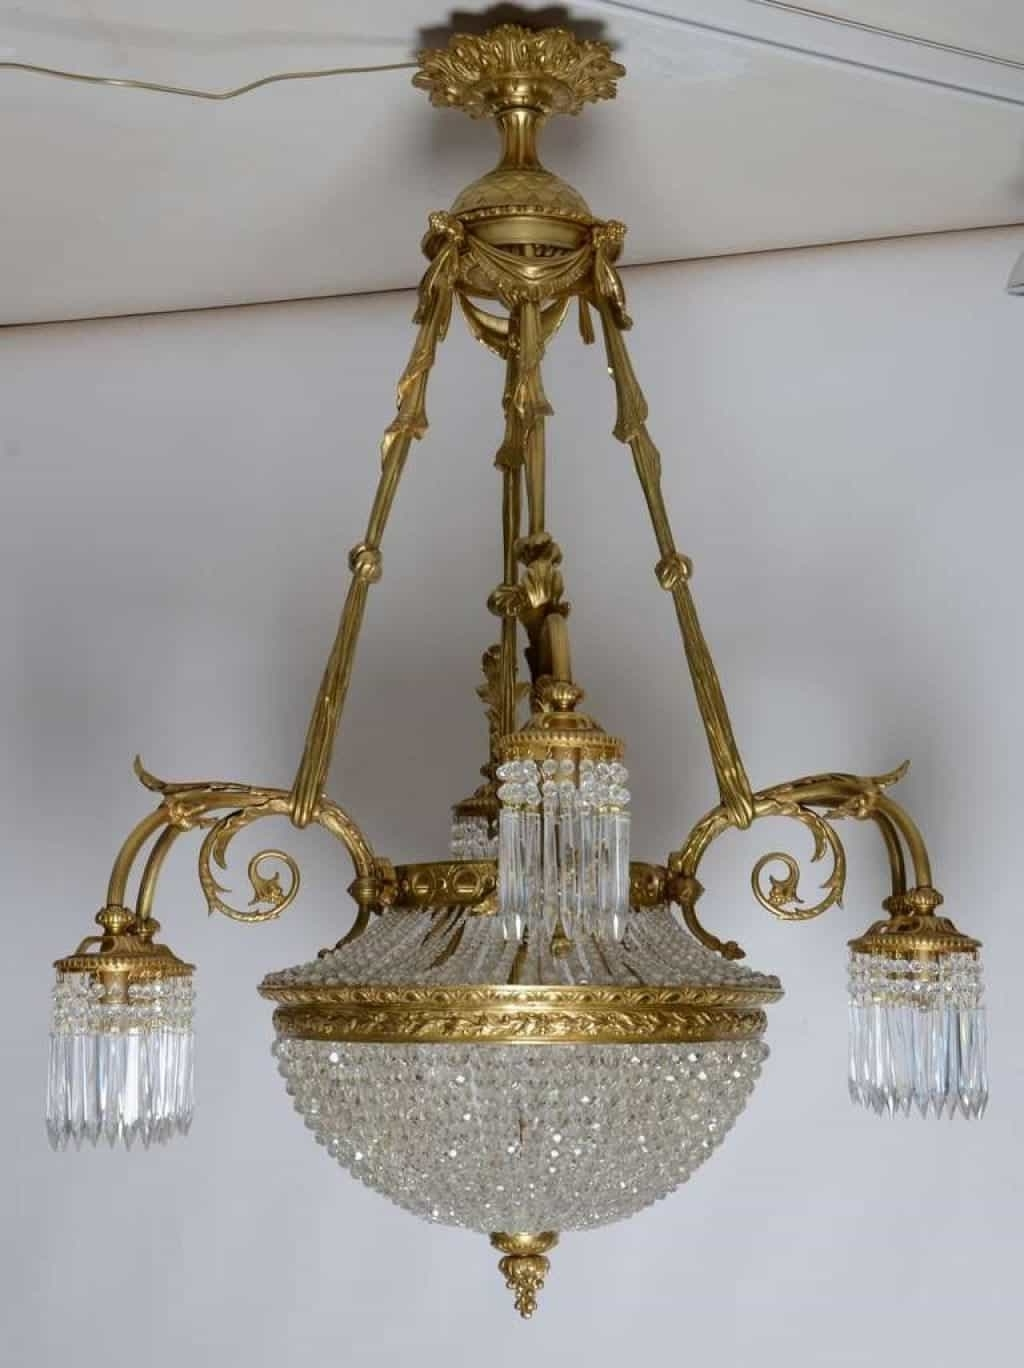 Xtend Pertaining To Well Known Antique French Chandeliers (View 20 of 20)